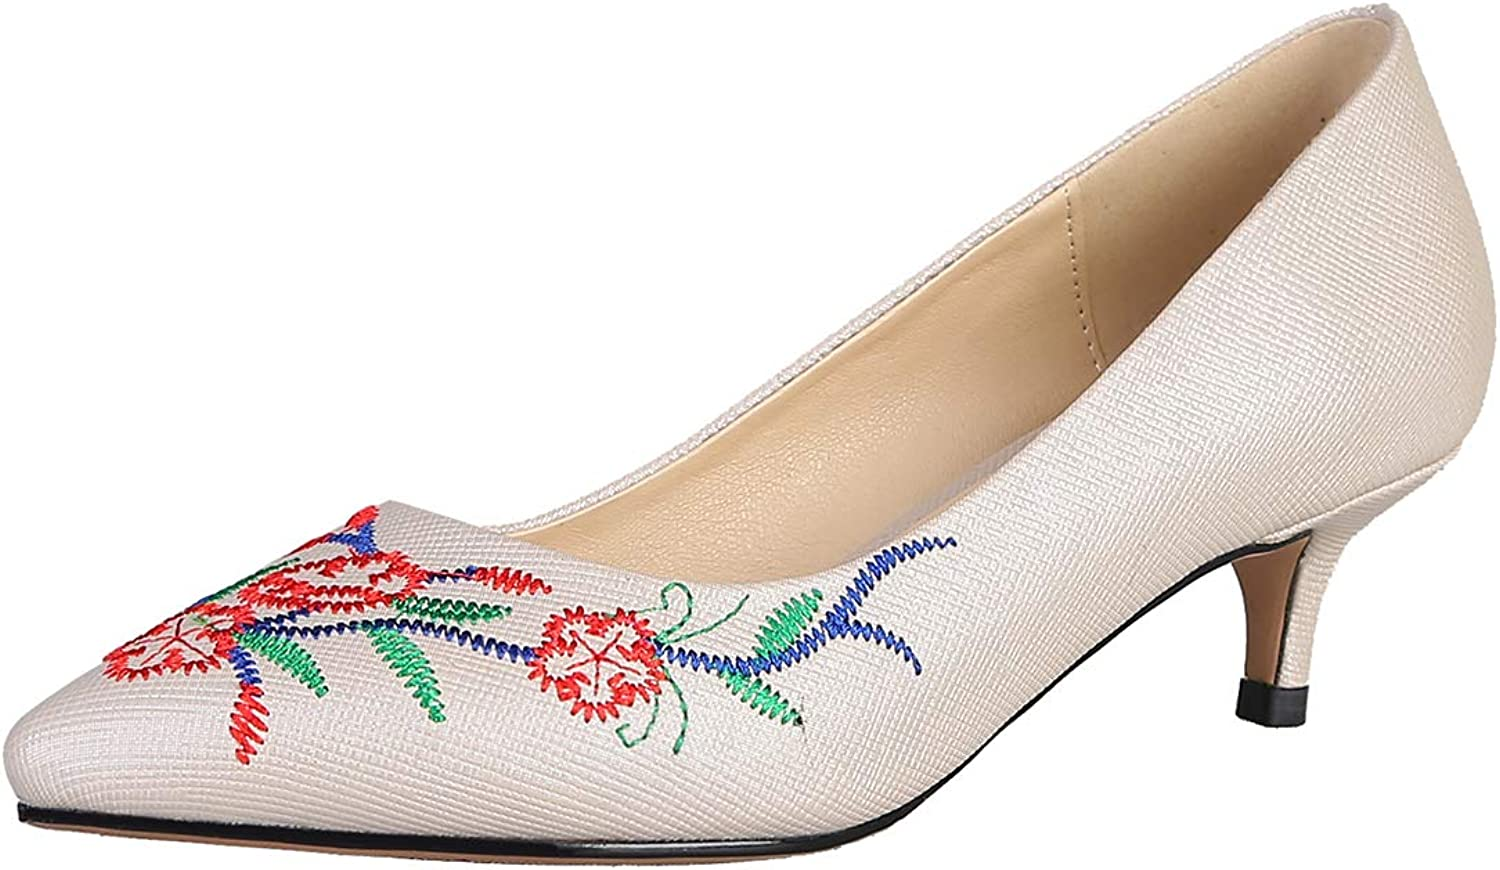 Artfaerie Womens Low Mid Kitten Heel Pointed Toe Pumps Slip on Dress Embroidered Retro Court shoes